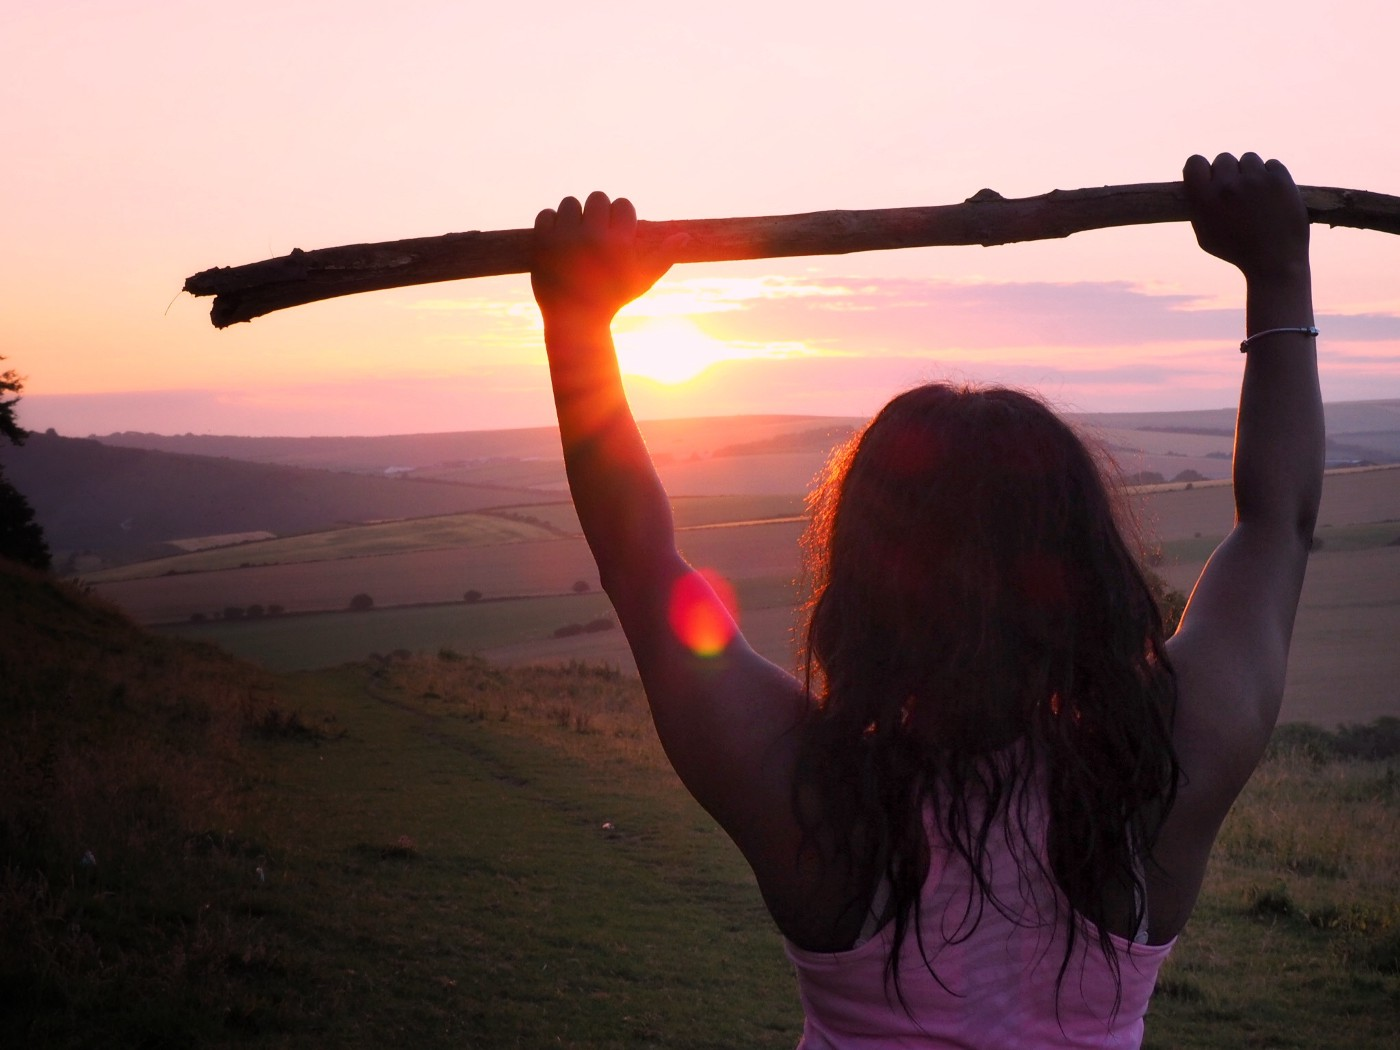 Woman looking over valley at sunrise holding stick in the air displaying an emotion of strength and conviction.